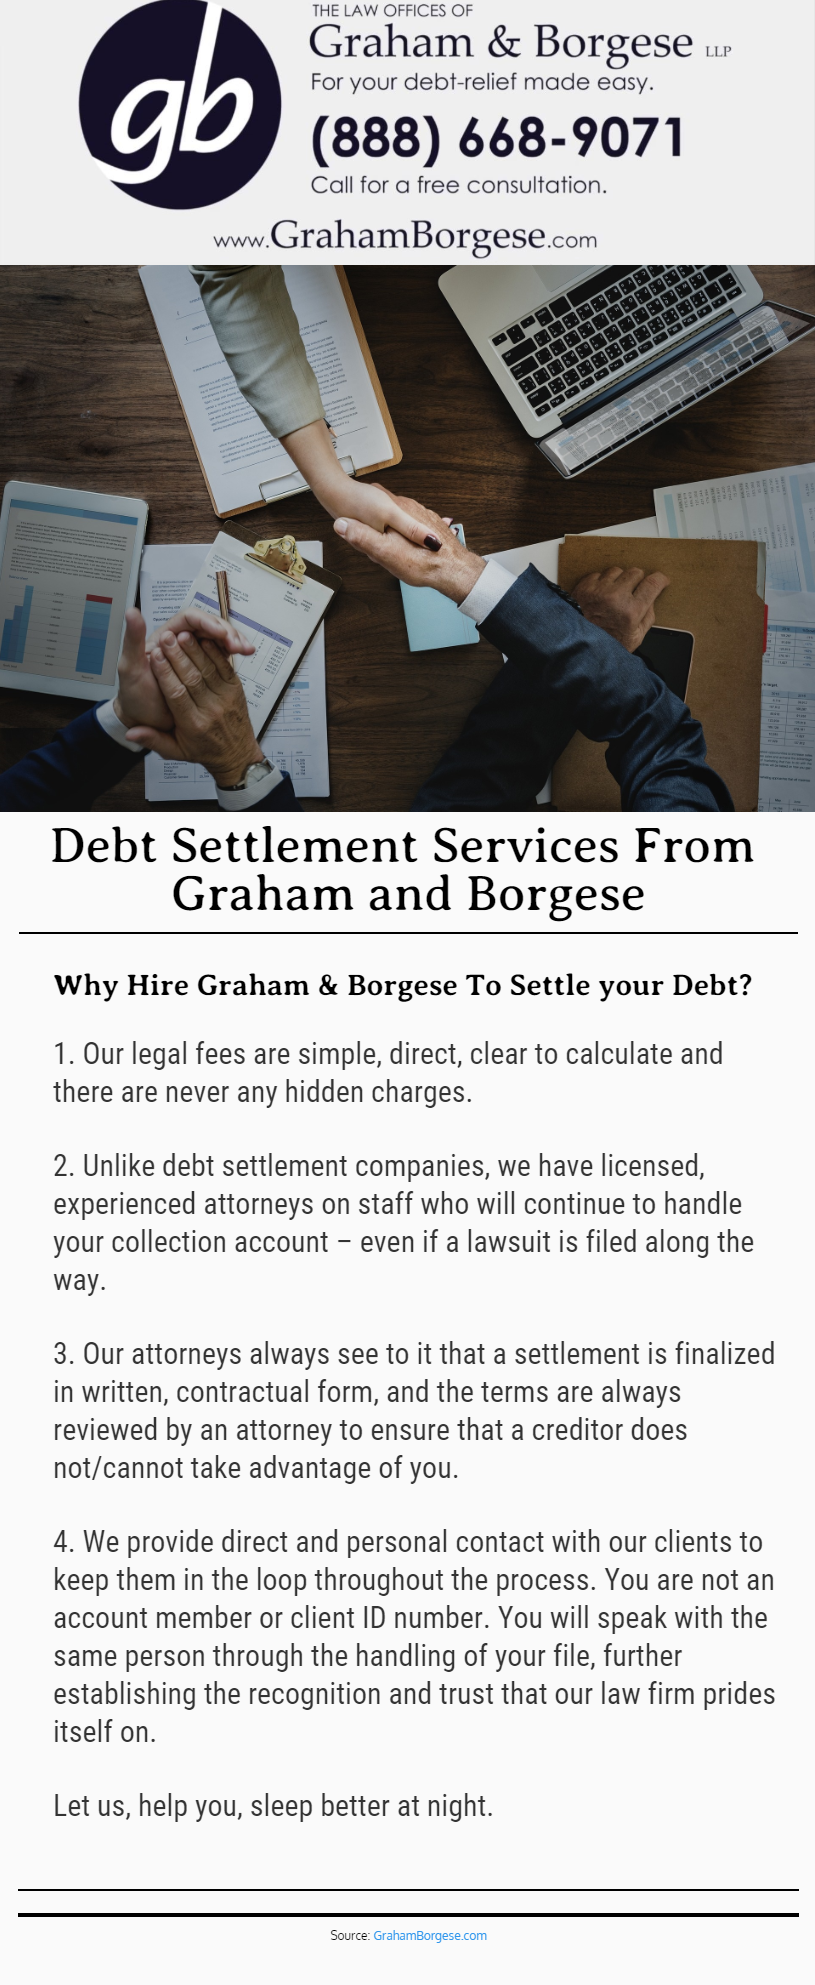 Affordable Debt Settlement Services in NY